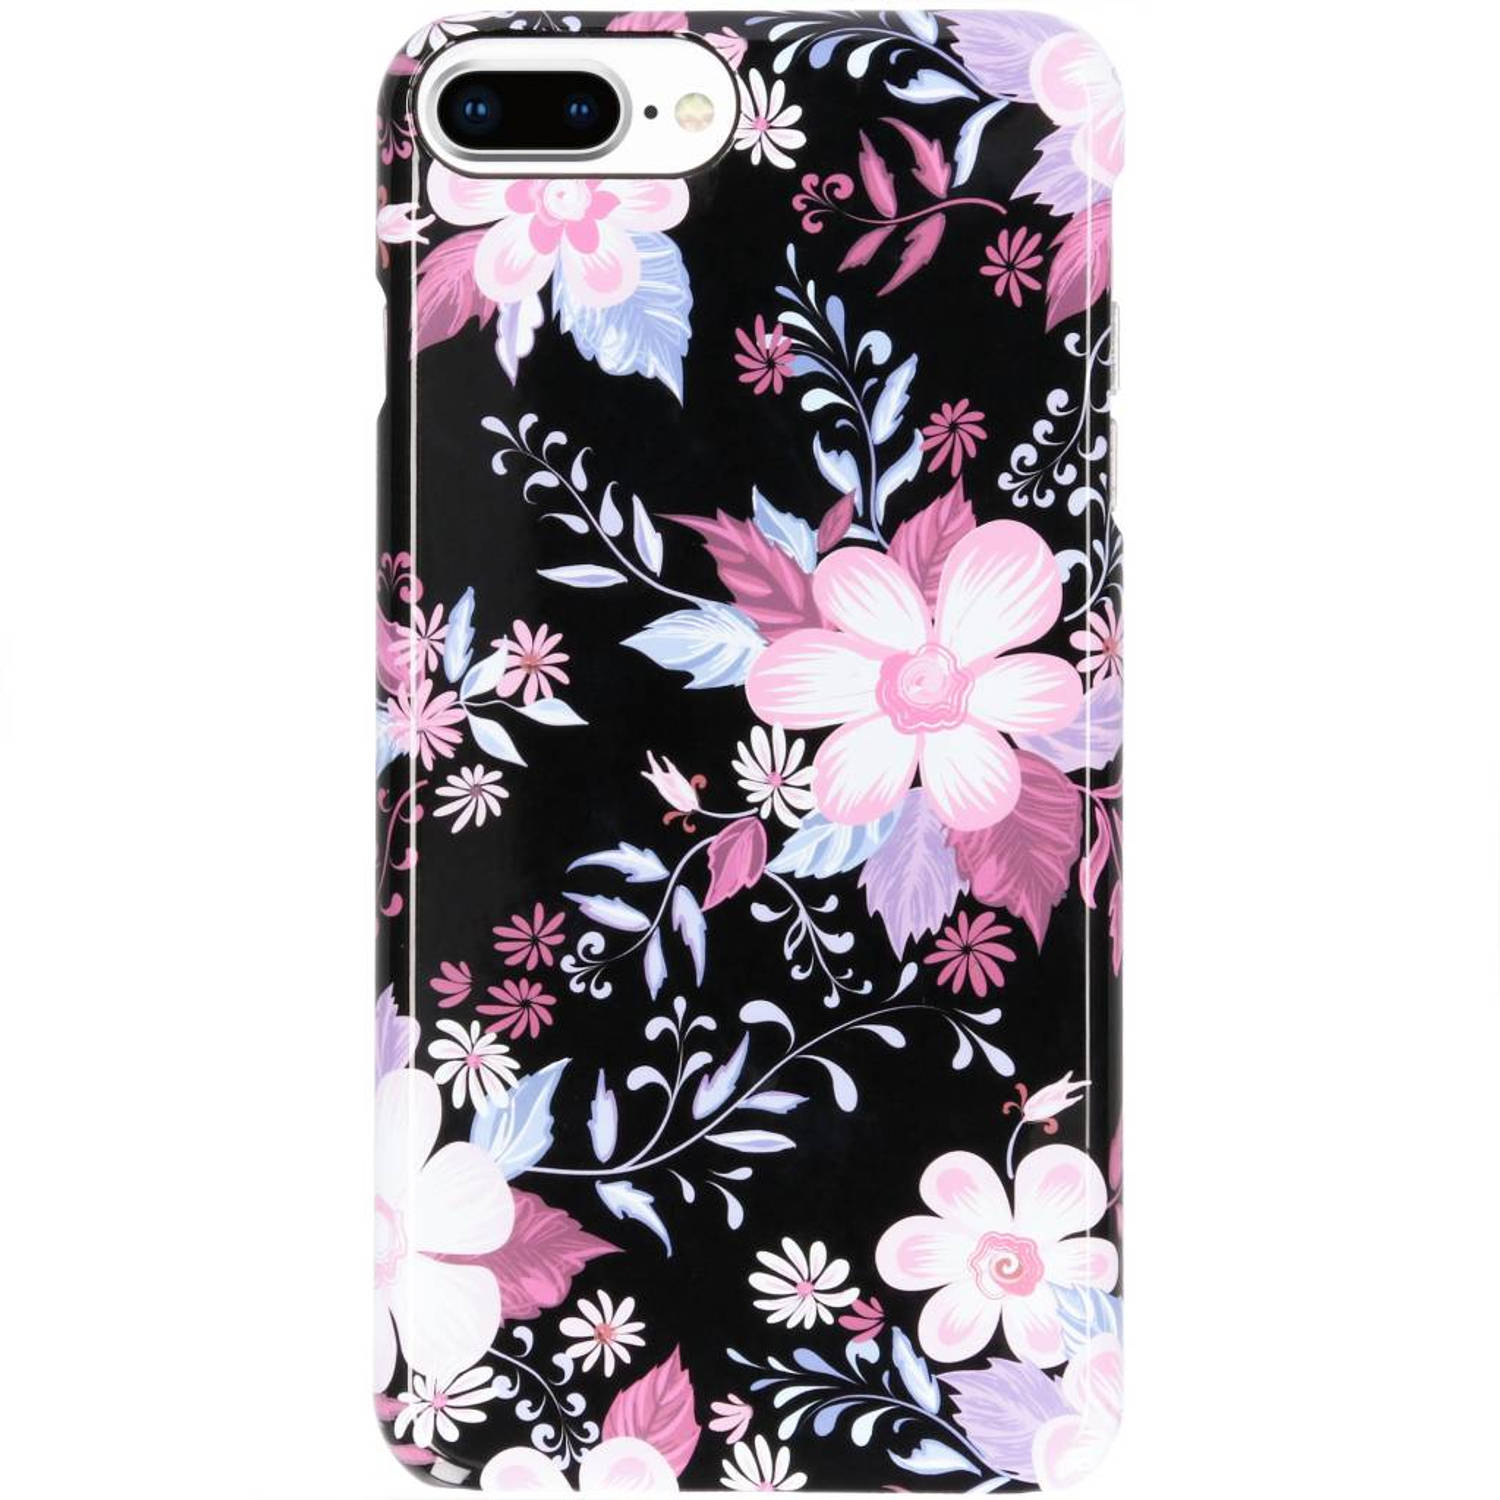 iPhone 8 Plus / 7 Plus / 6(s) Plus hoesje bloemen zwart - Flowers Passion